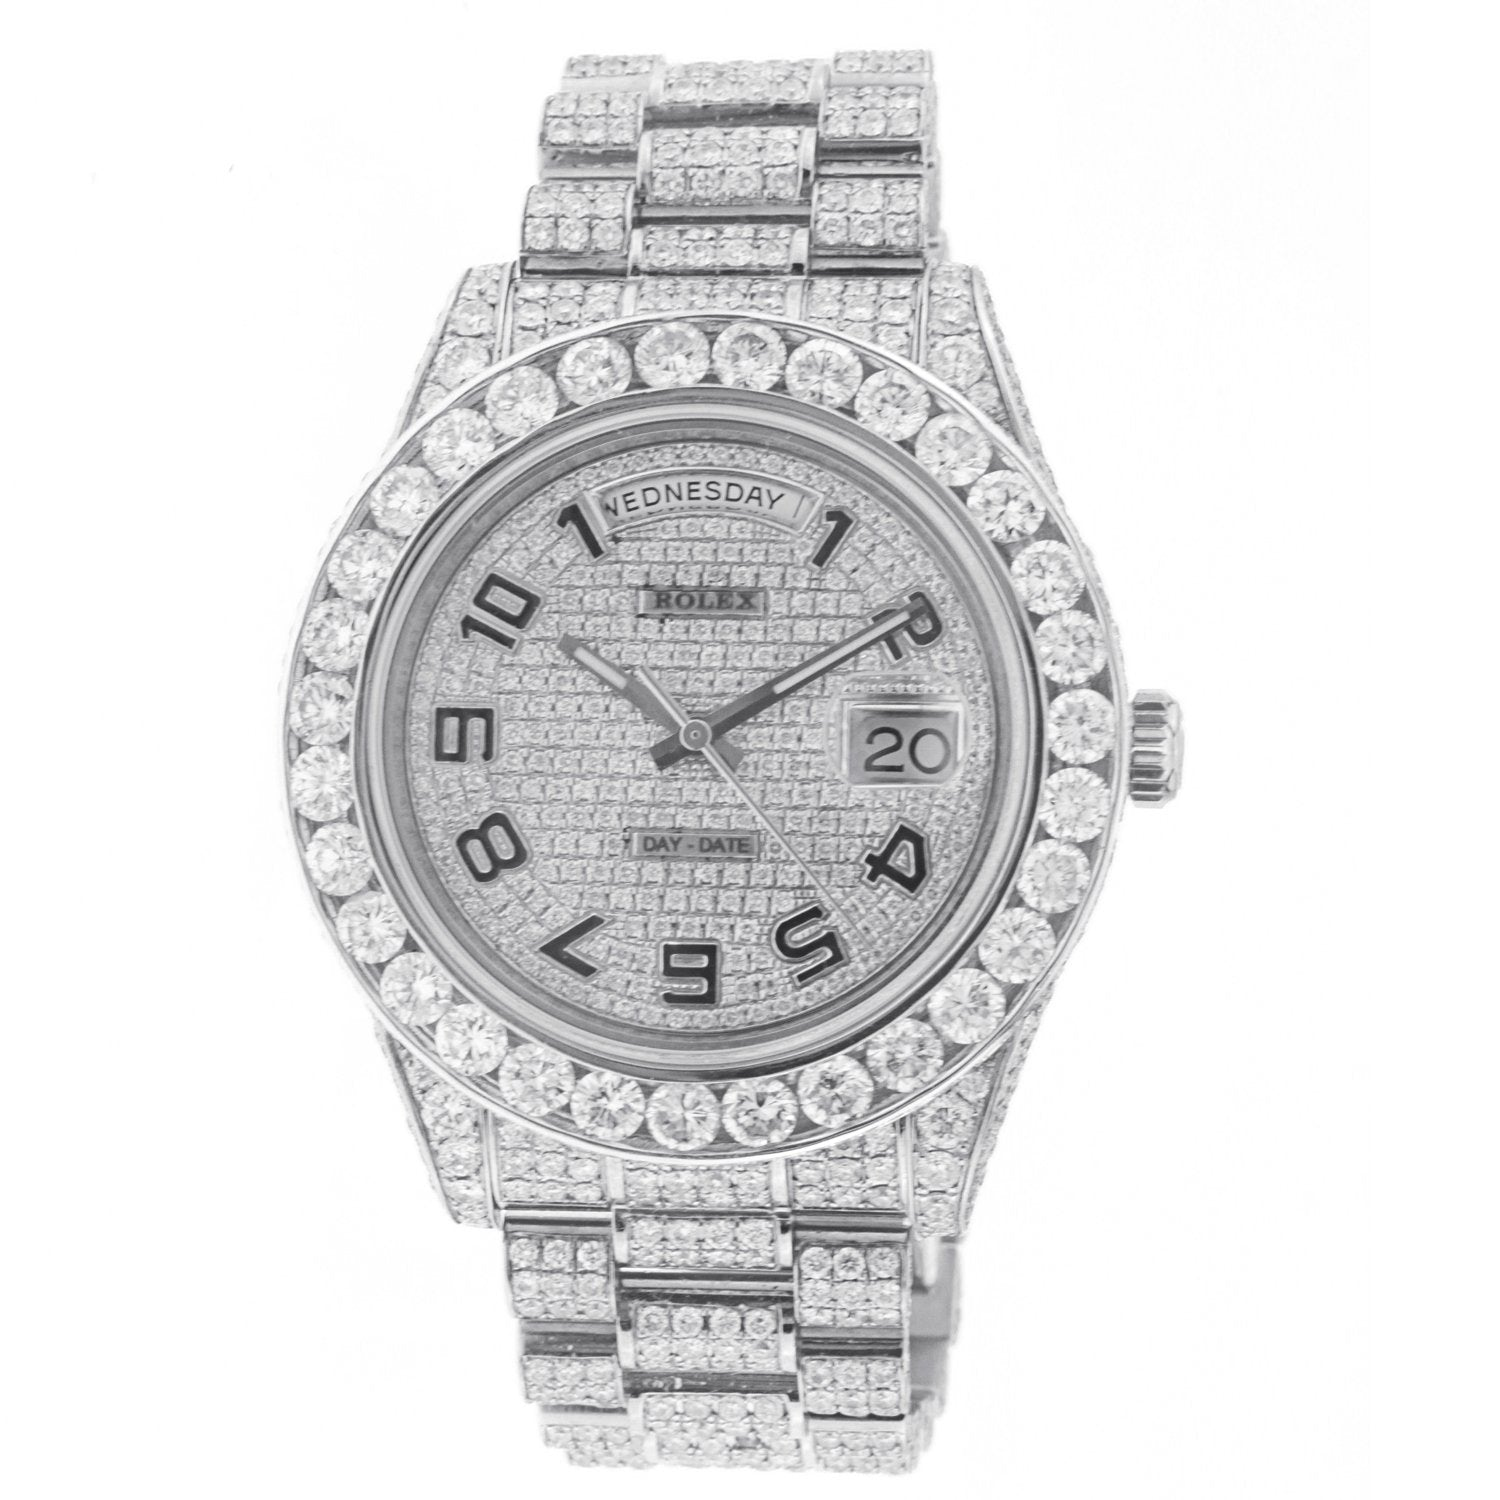 18K White Gold Rolex Diamond Watch, Day Date II 21839 41mm, with 33.25 CT Diamonds